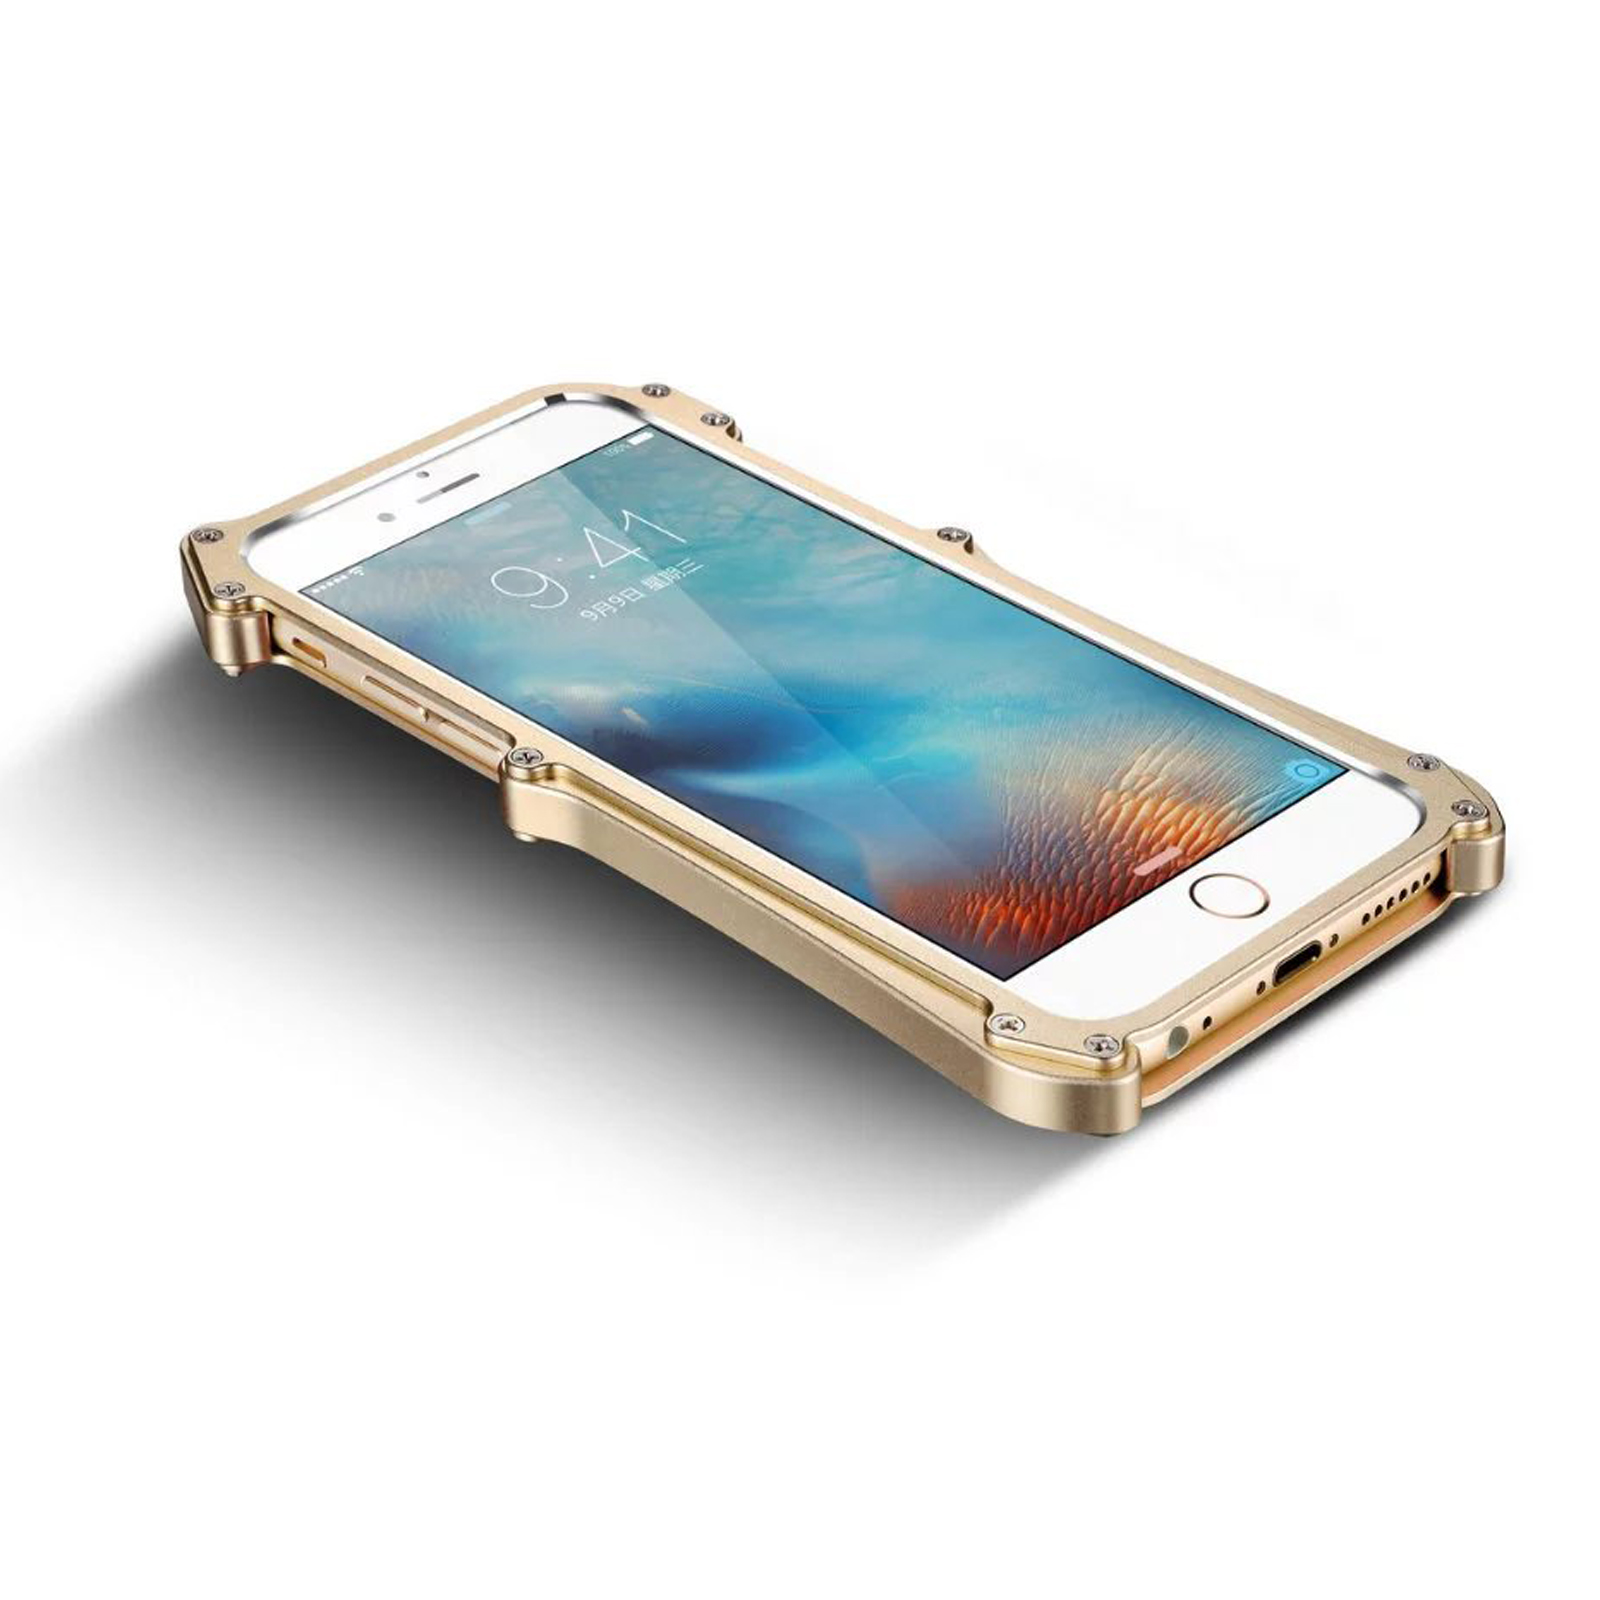 NEW Shockproof Metal Bumper Tempered Glass Clear Case